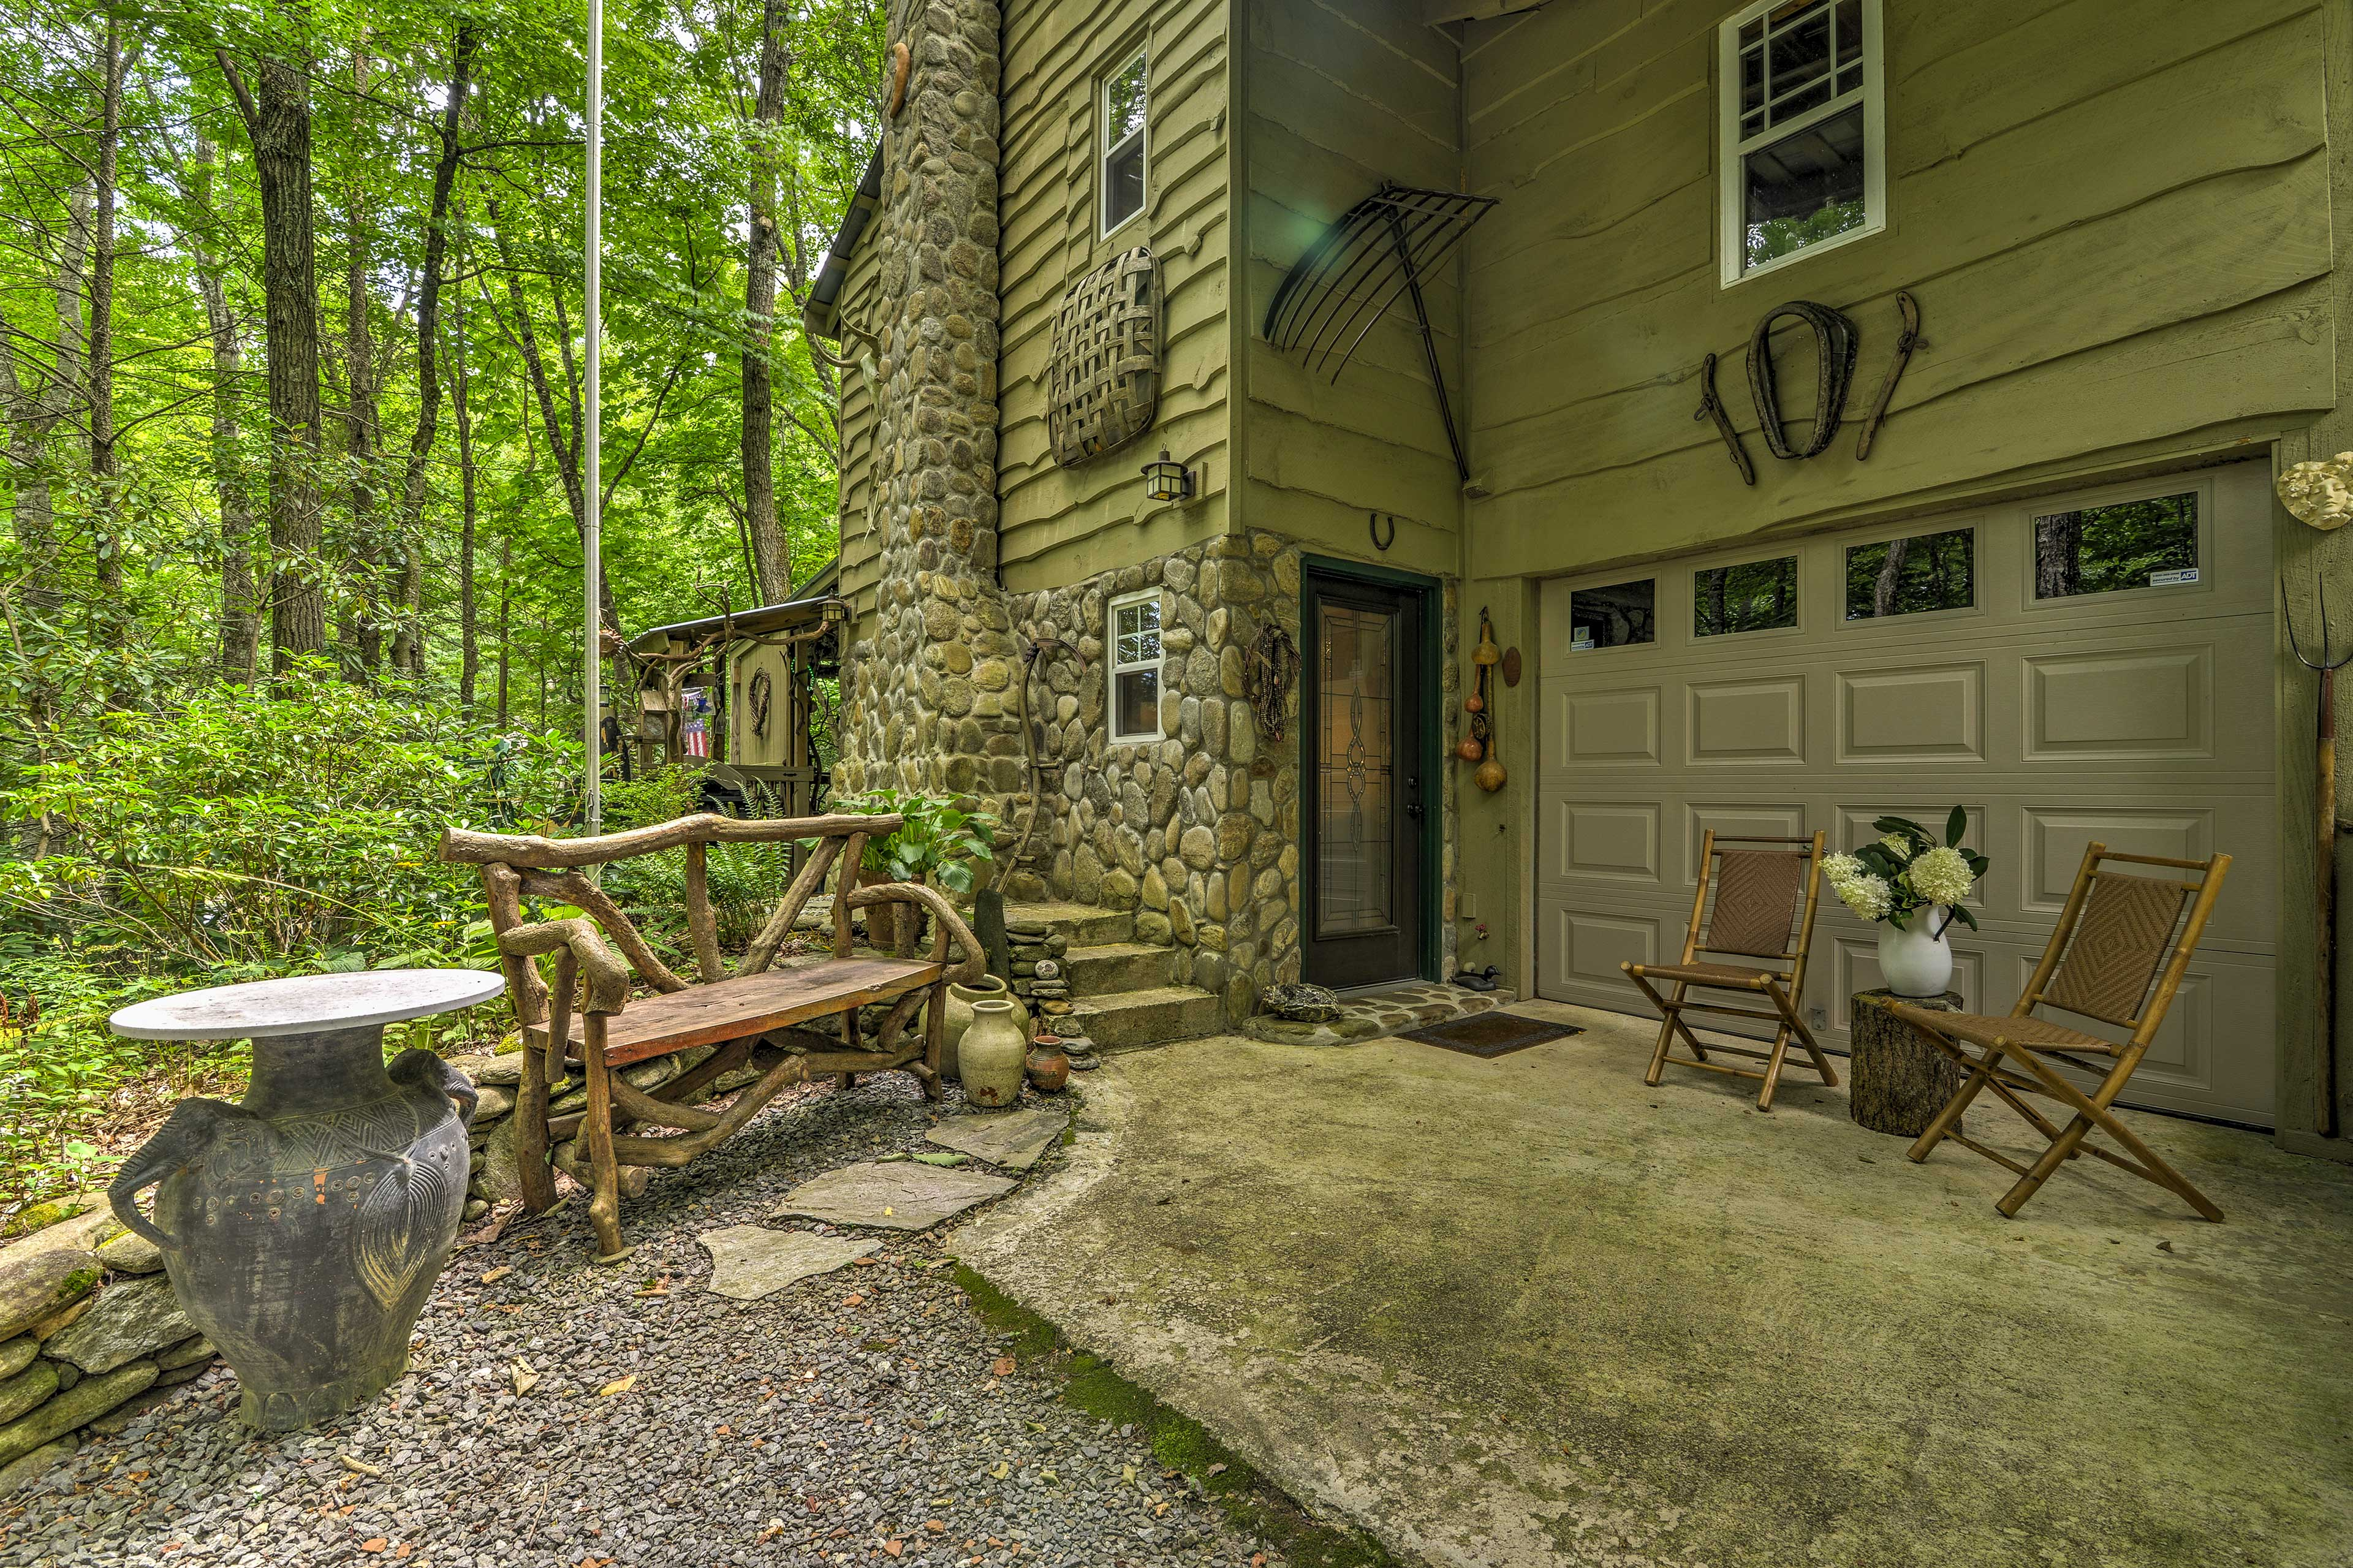 Rejuvenate your sould at this secluded mountain cabin!